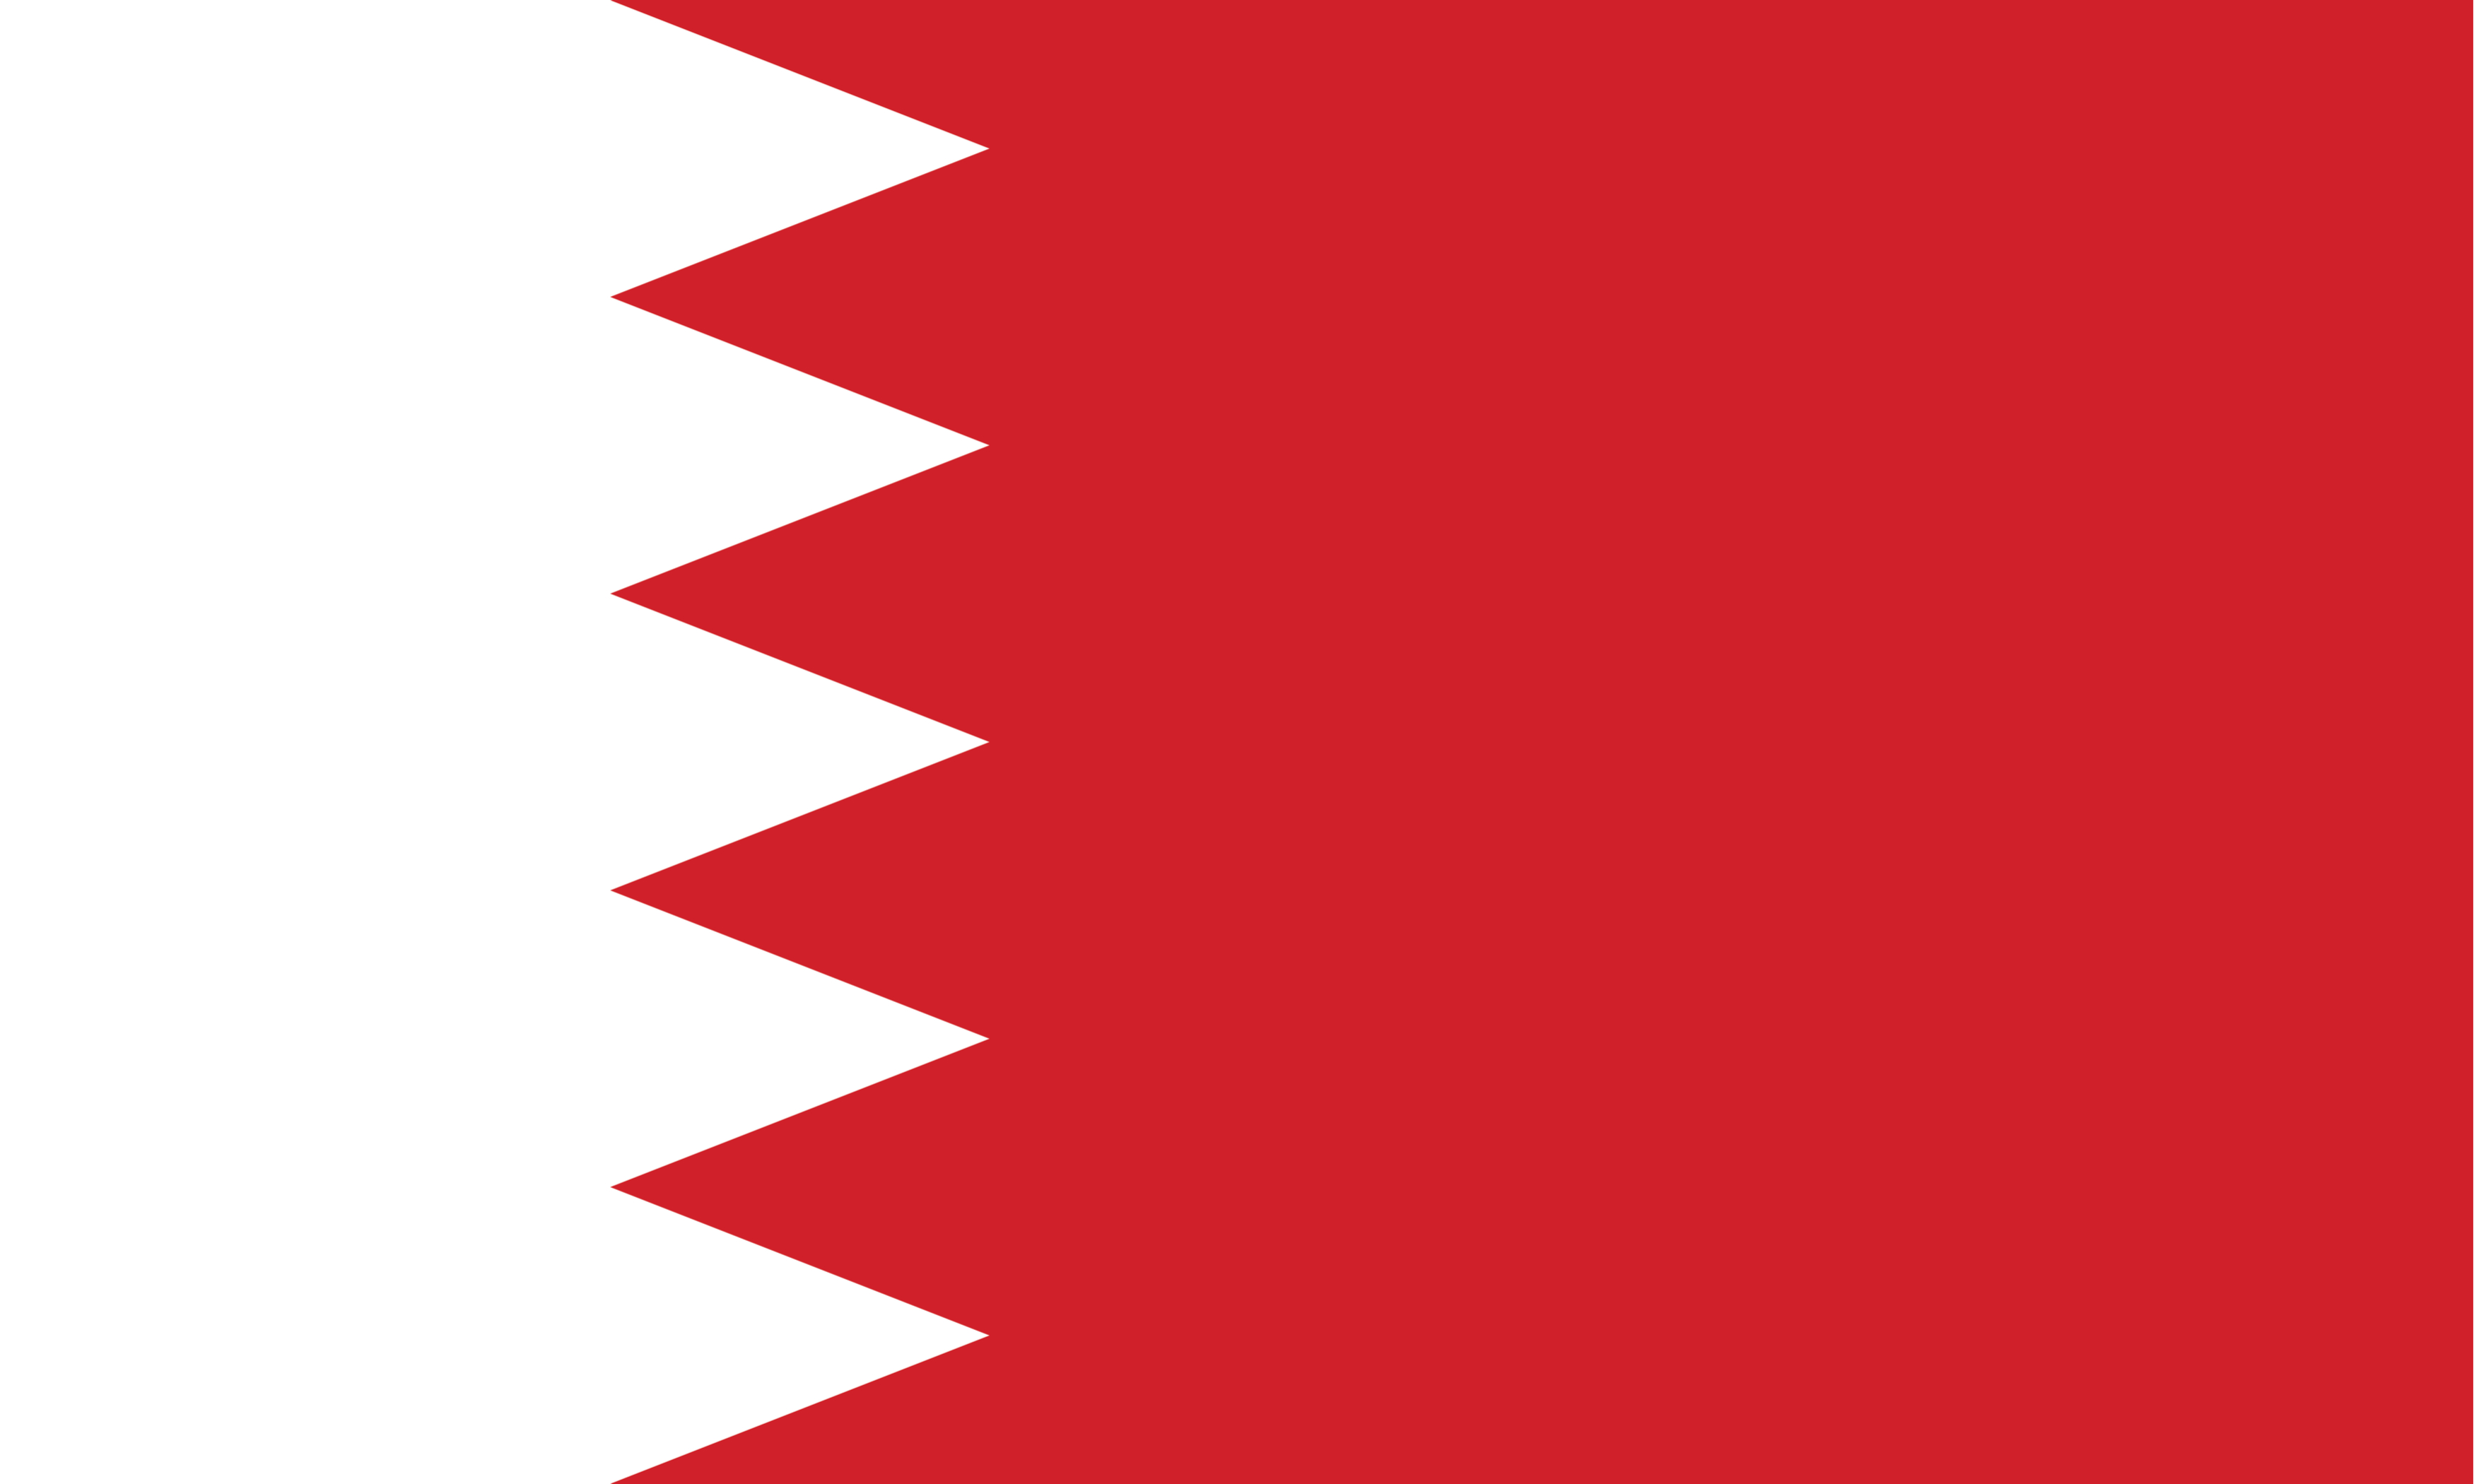 The National Flag of Bahrain features two bands of different colors (red and white) and of different widths